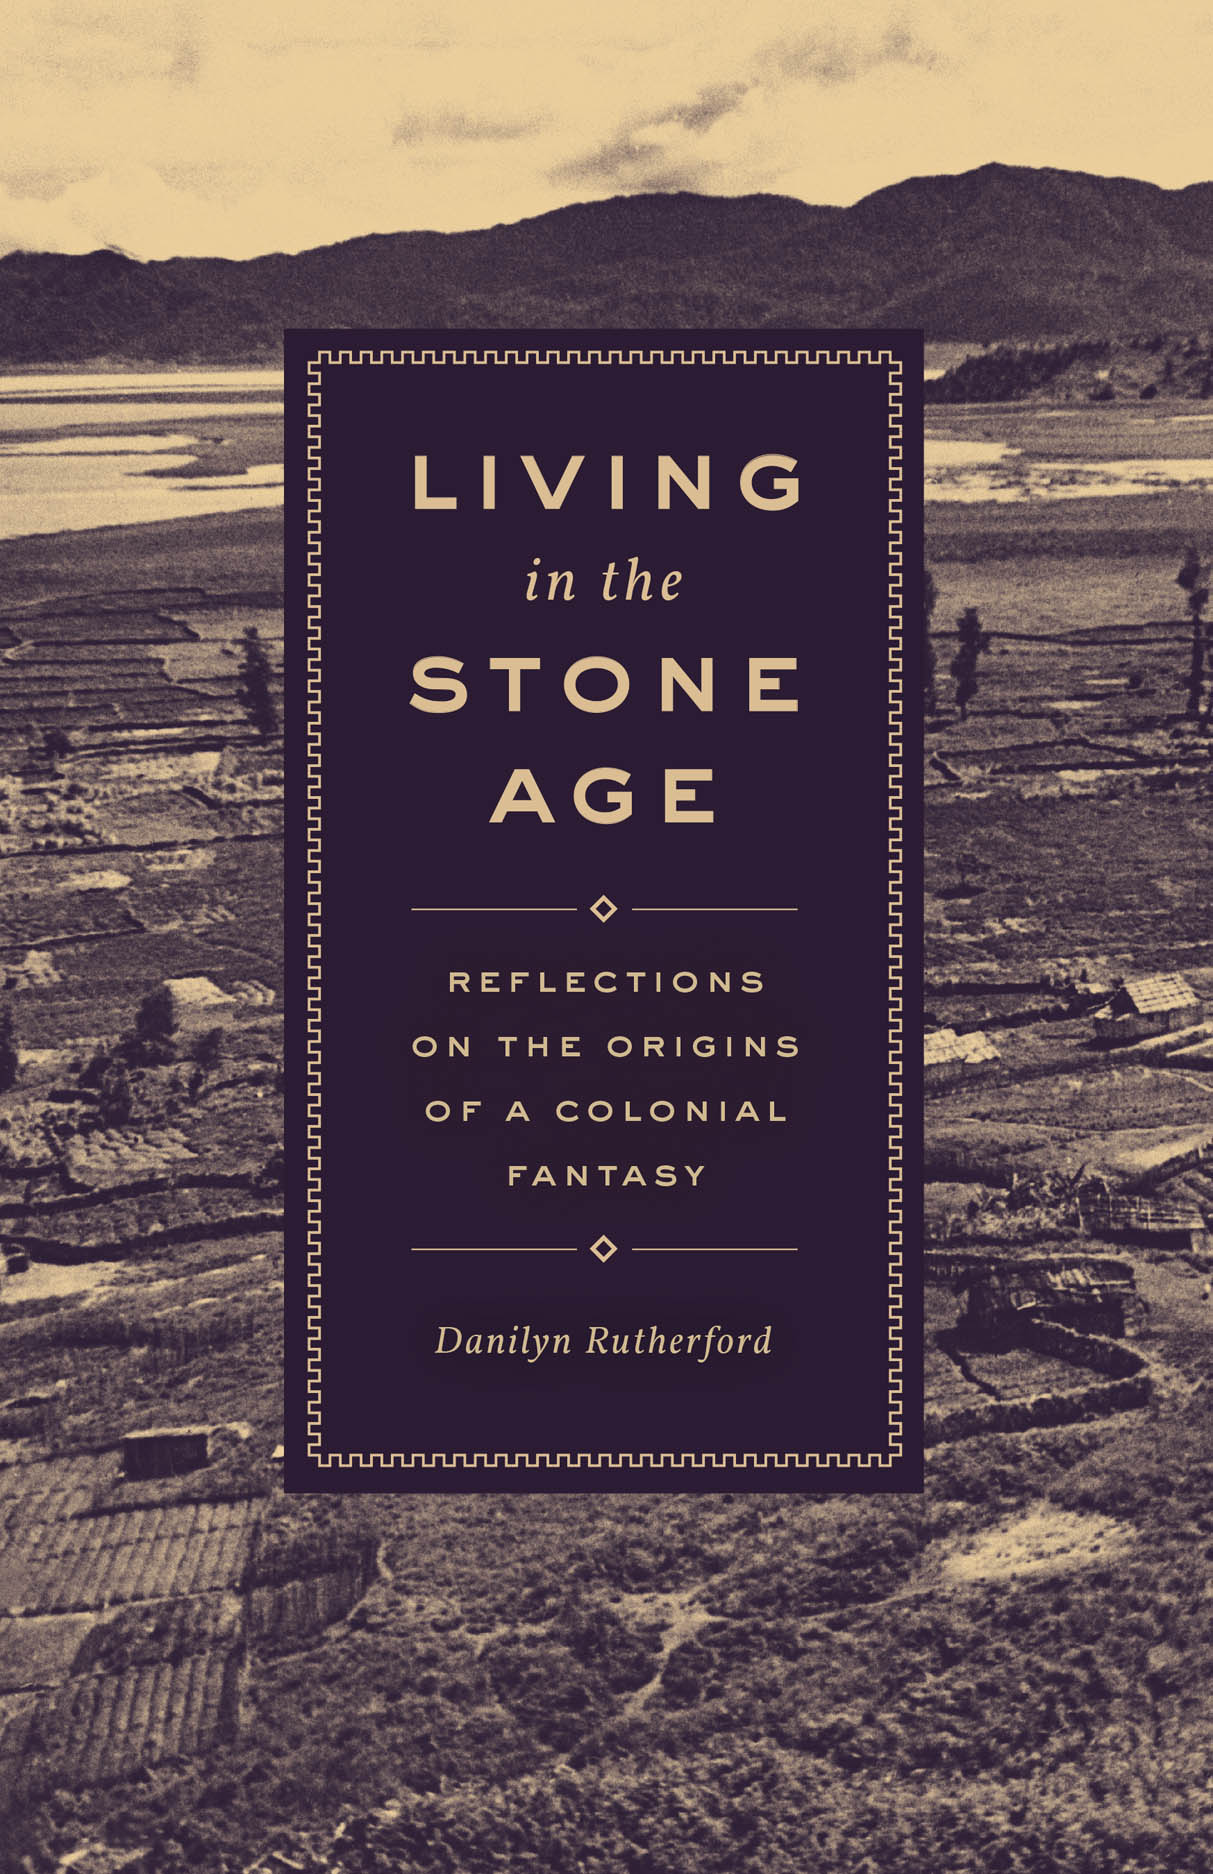 Living in the Stone Age: Reflections on the Origins of a Colonial Fantasy